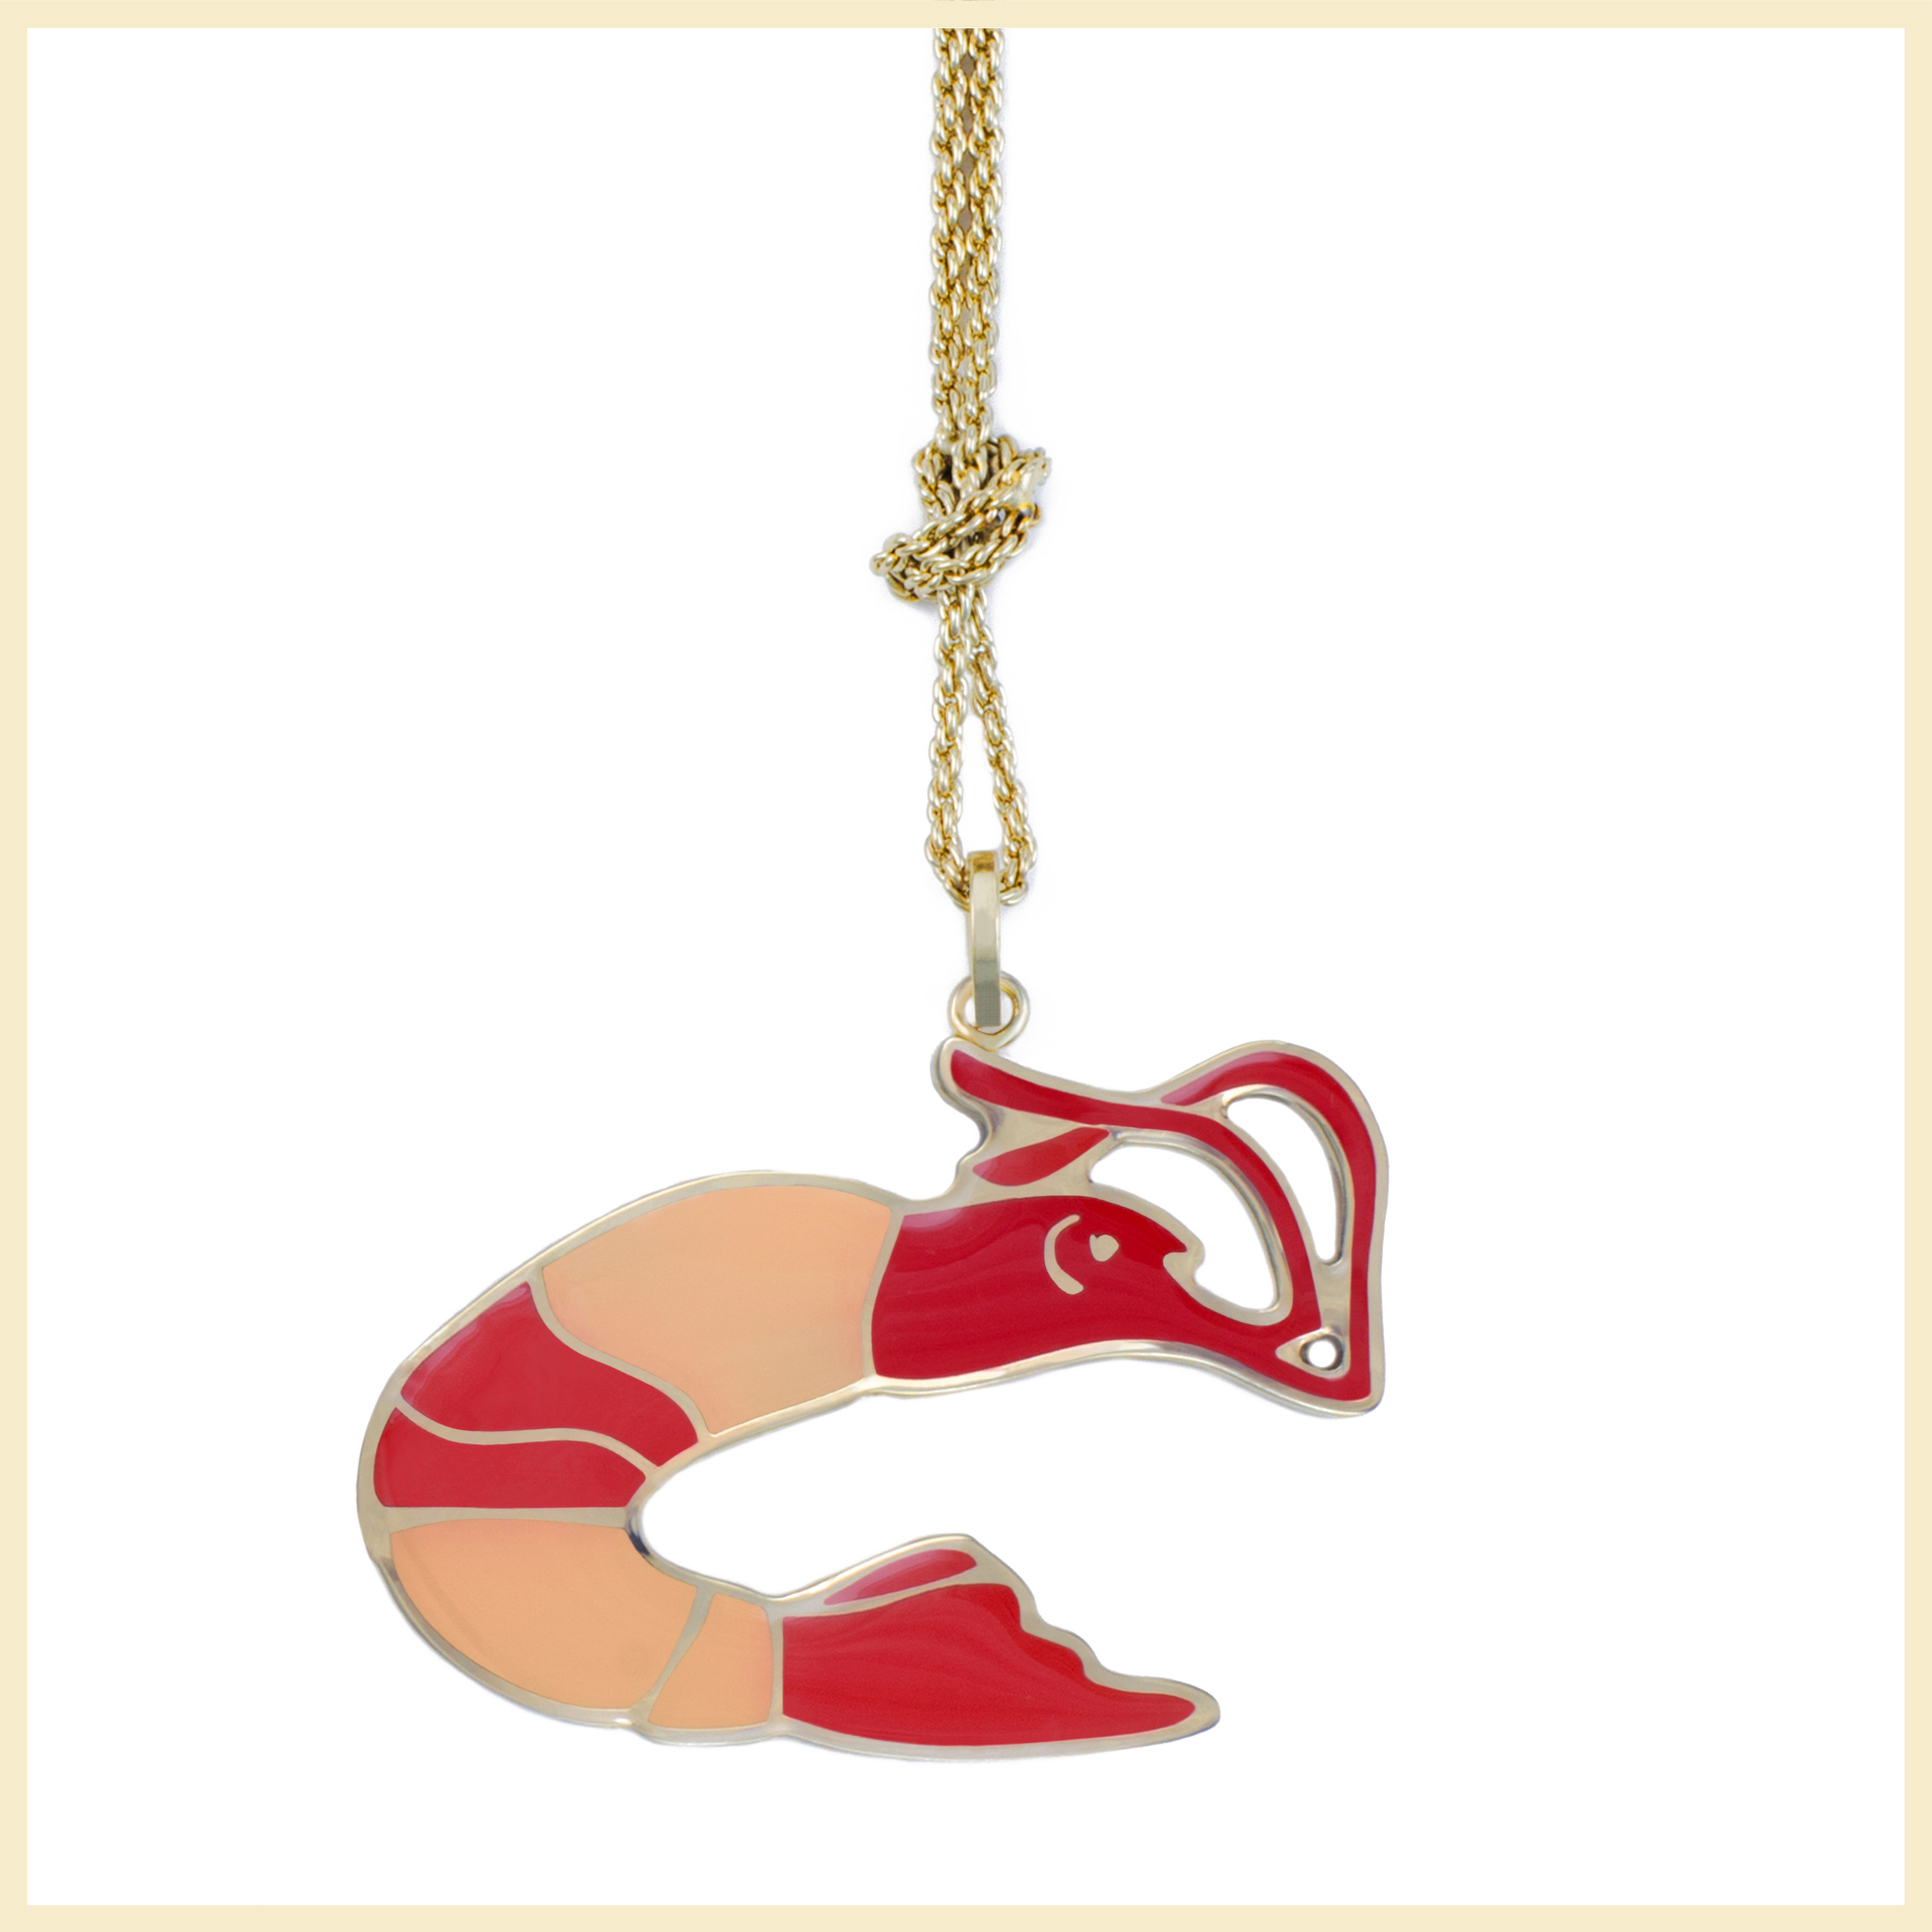 shrimp-necklace-cordien-bijoux-jewel-1.jpg